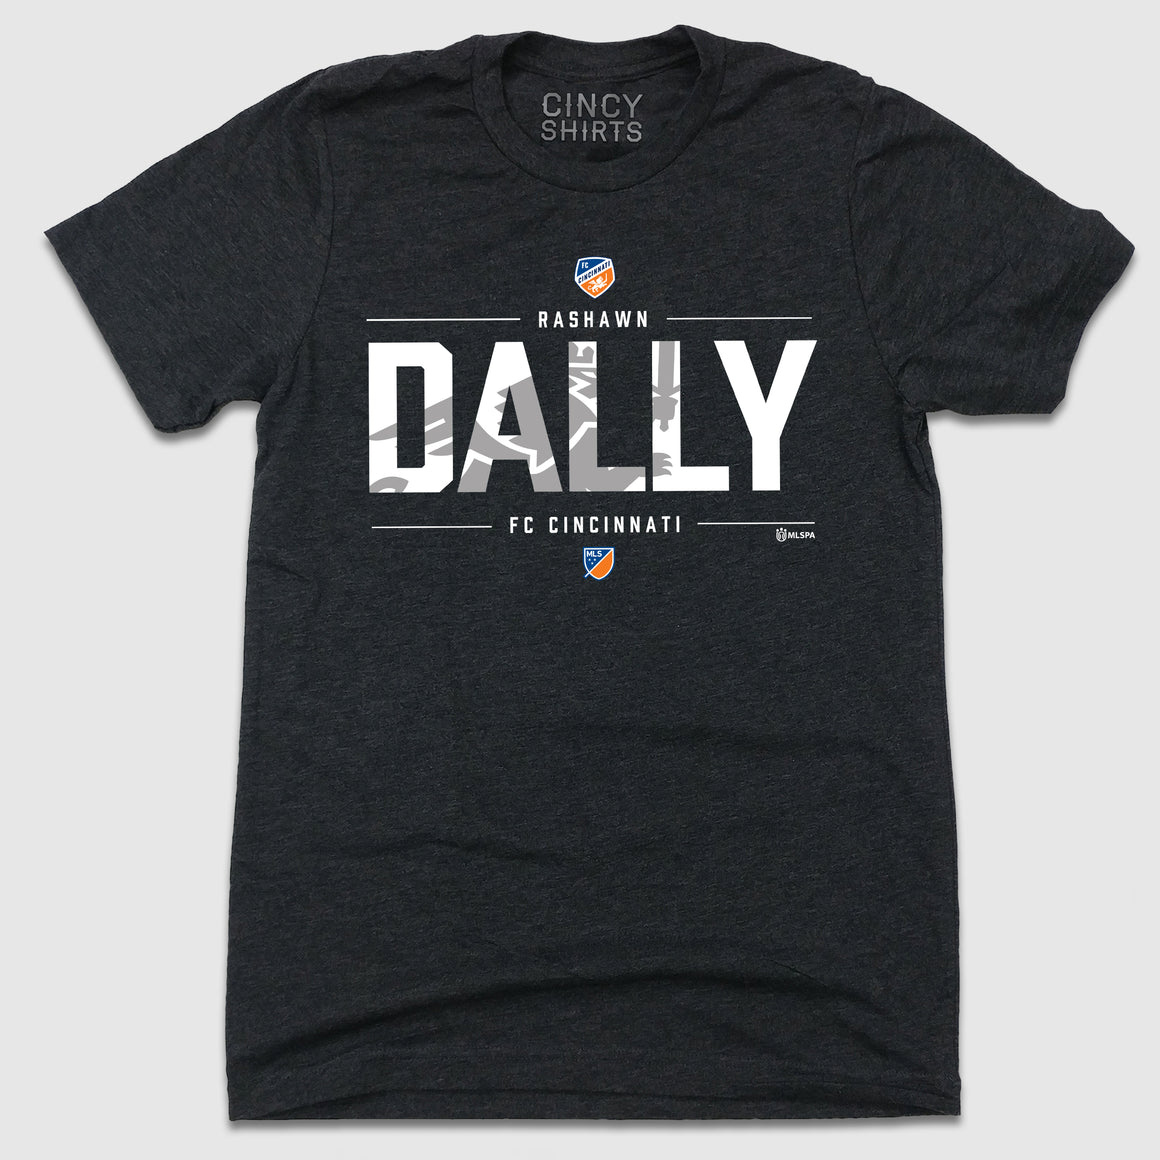 Official Rashawn Dally MLSPA T-shirt FC Cincinnati